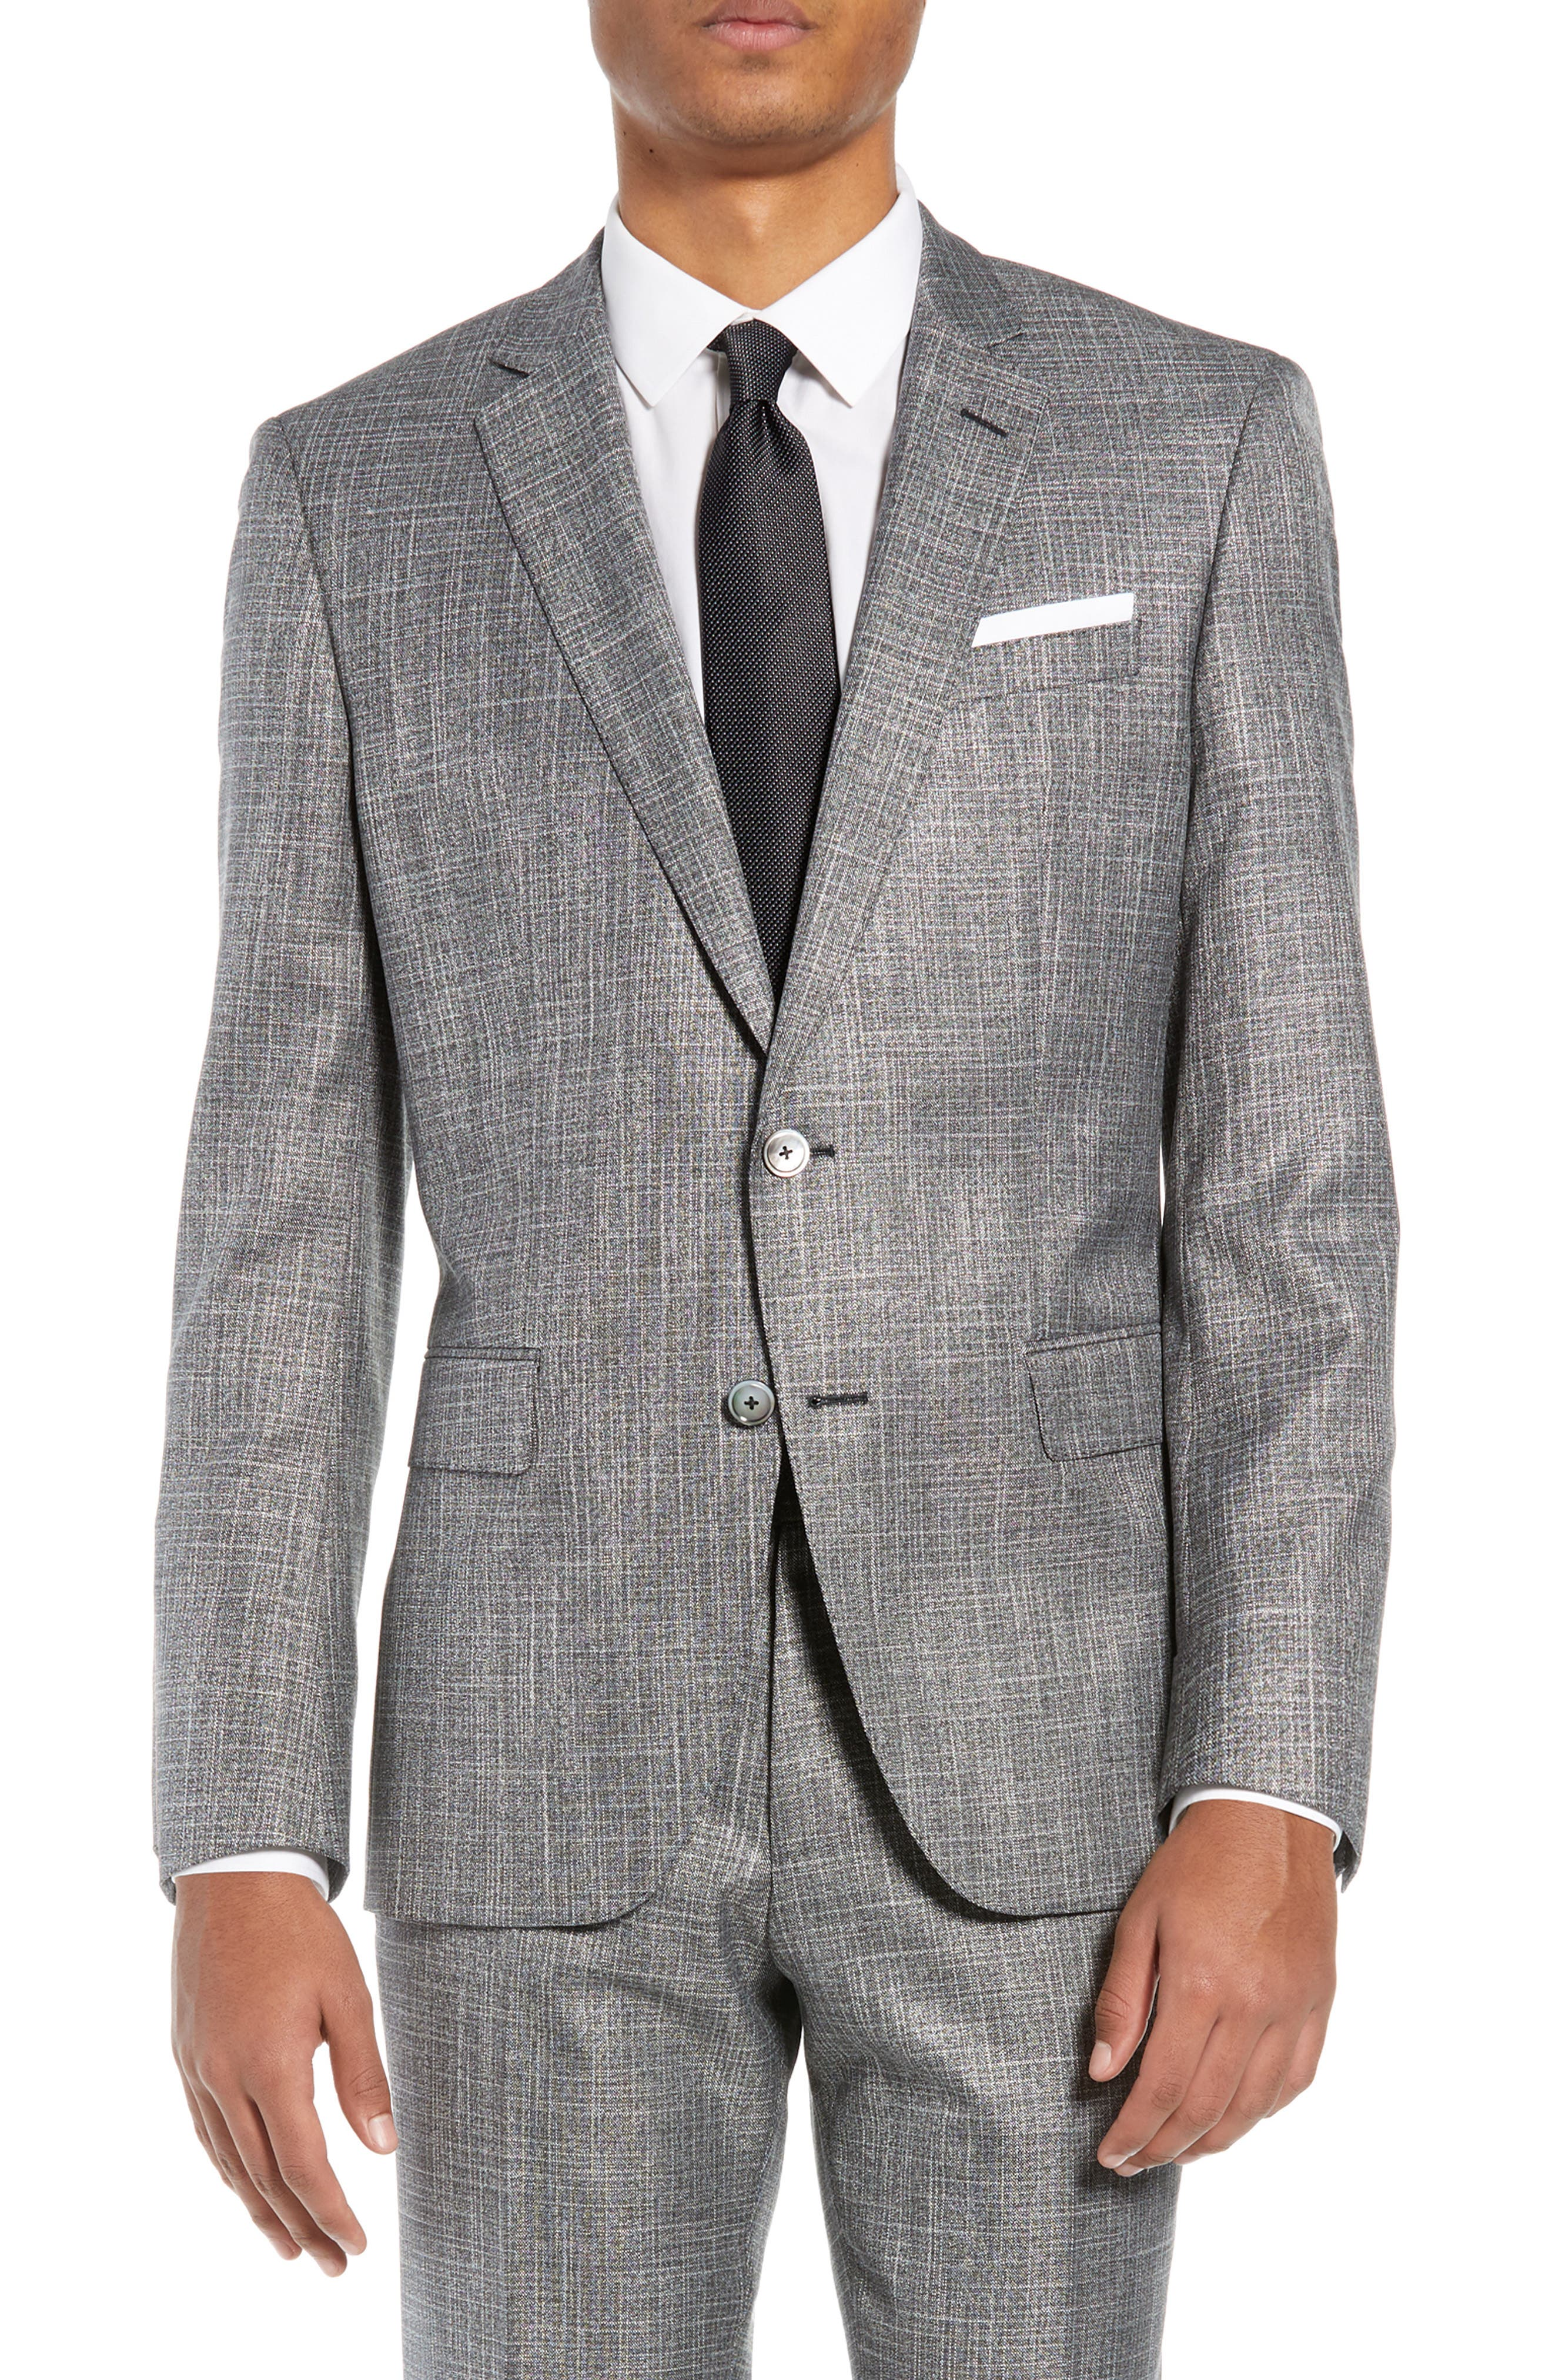 BOSS, Hutson/Gander Slim Fit Solid Wool Blend Suit, Alternate thumbnail 5, color, MEDIUM GREY